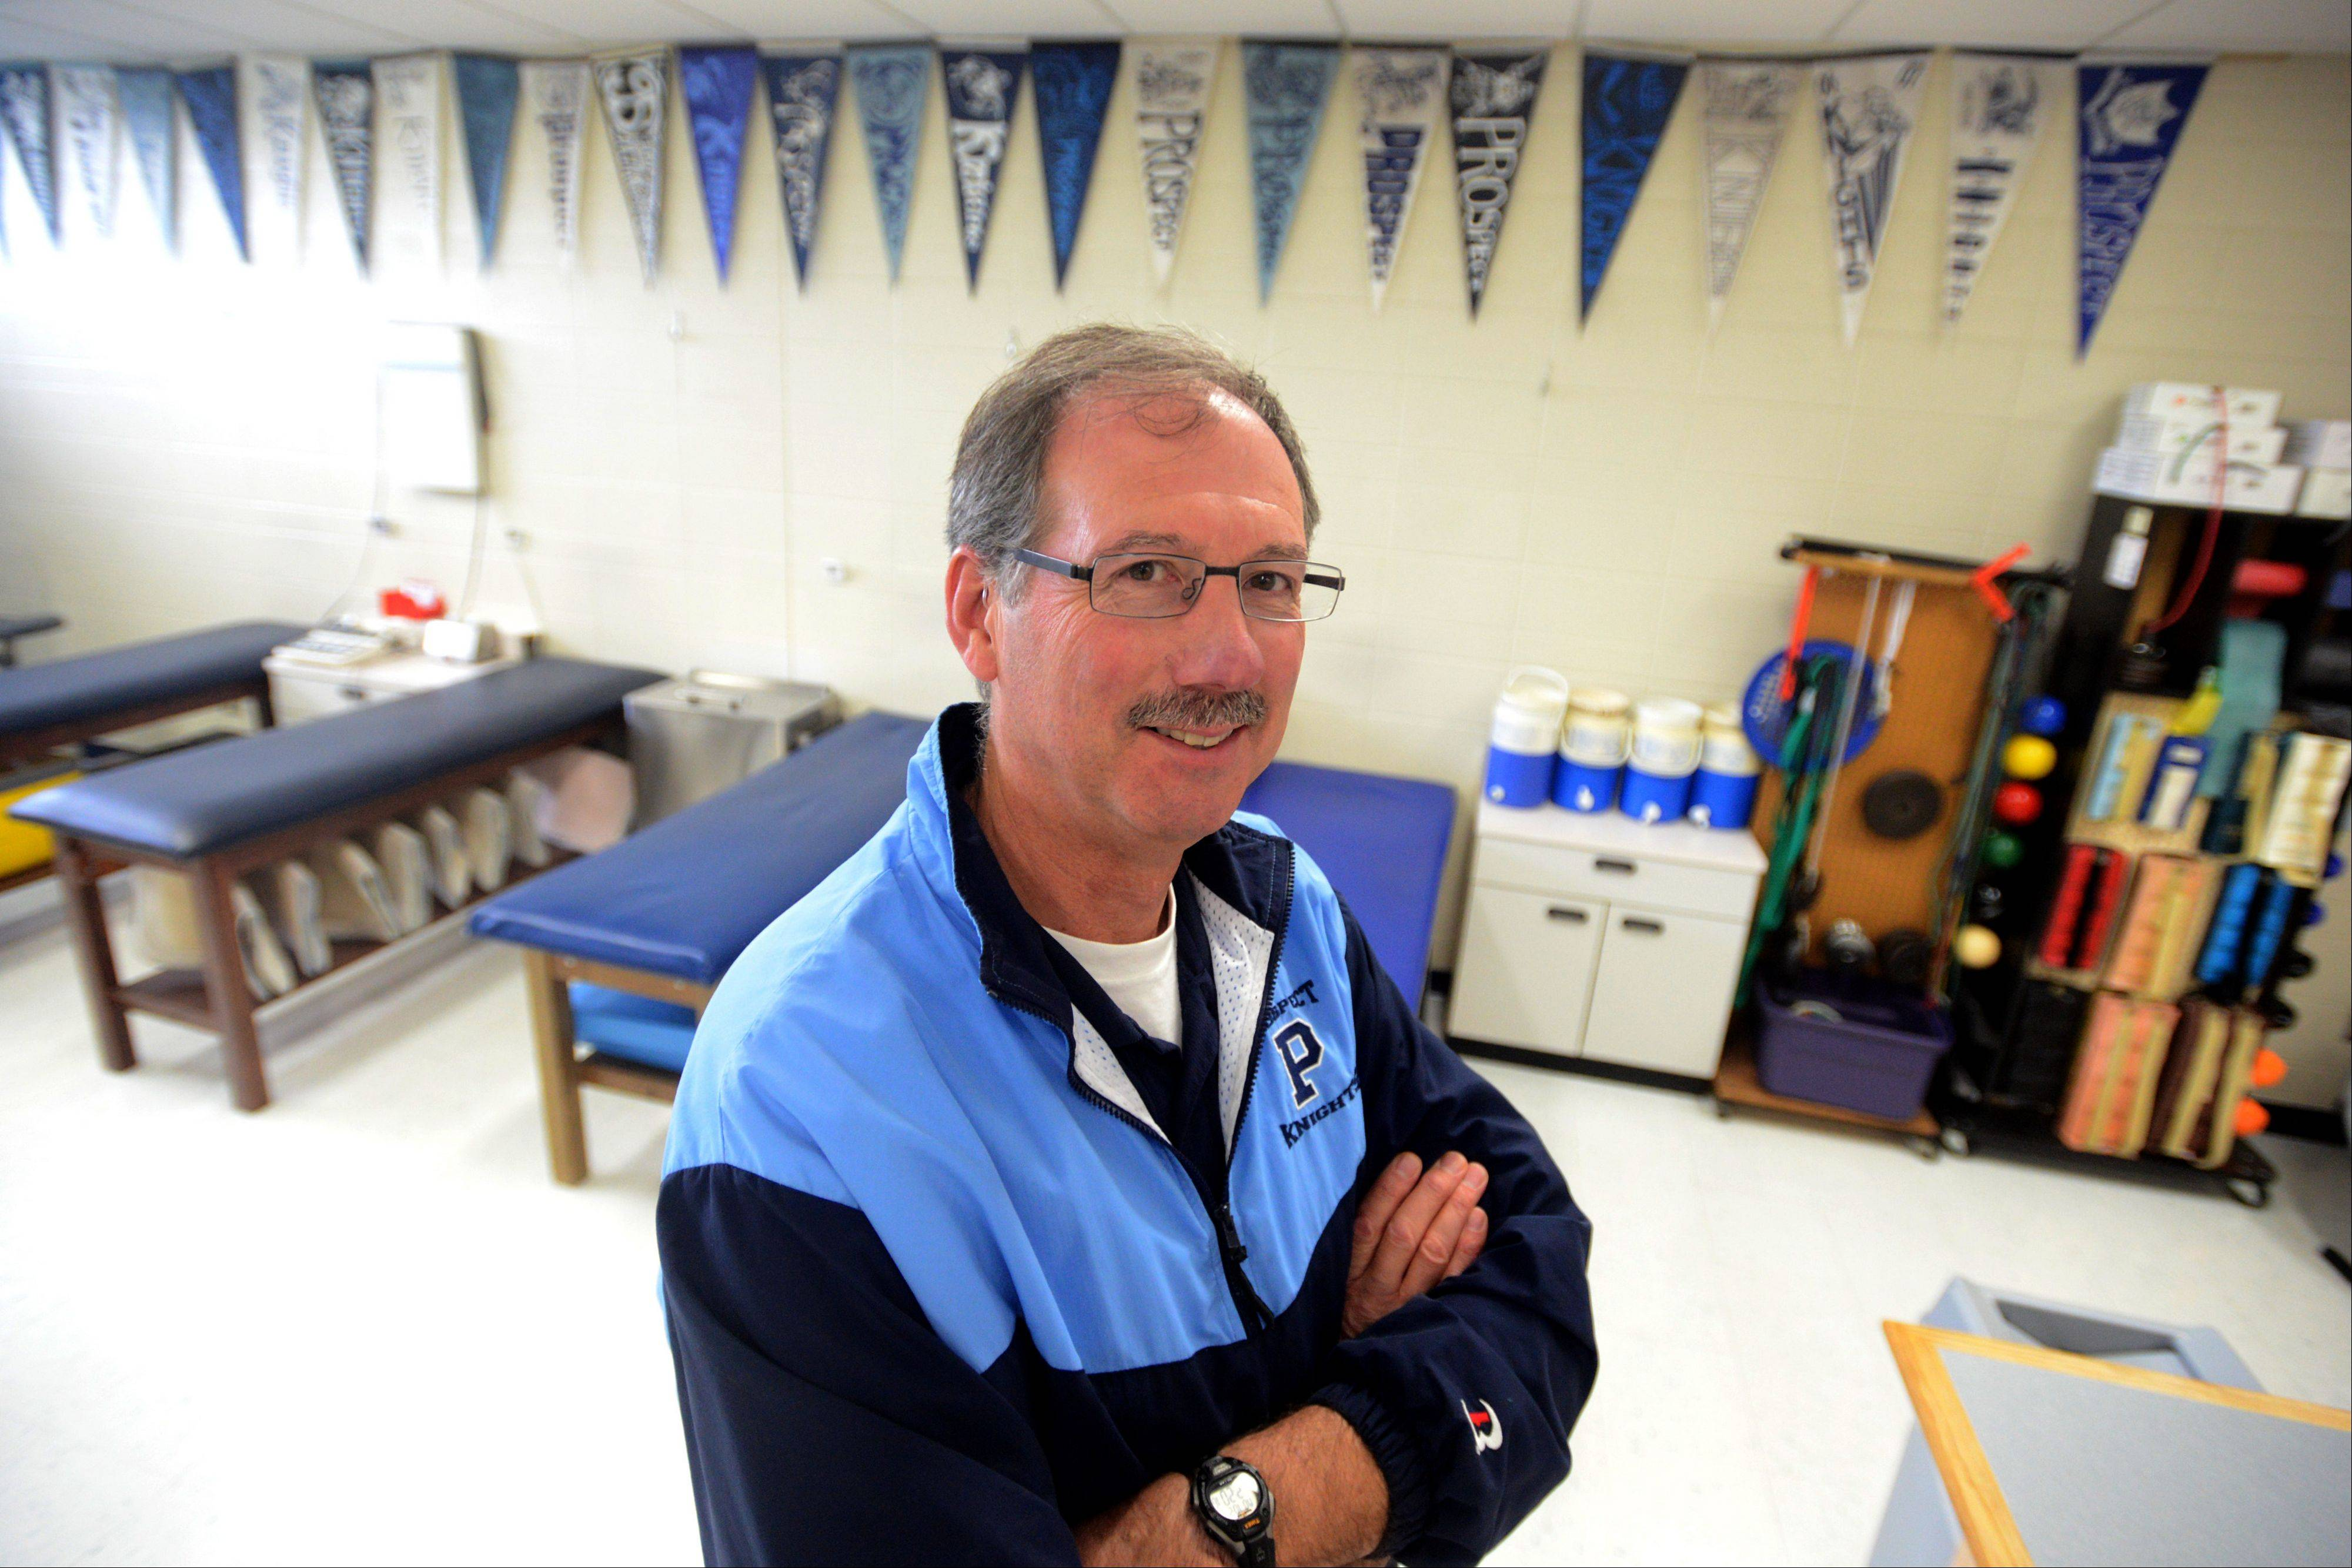 Prospect athletic trainer Matt Guth will be honored at this weekend's football game against Elk Grove for his many years of service. On the wall of the training room behind him are Prospect pennants Guth has collected over the decades.